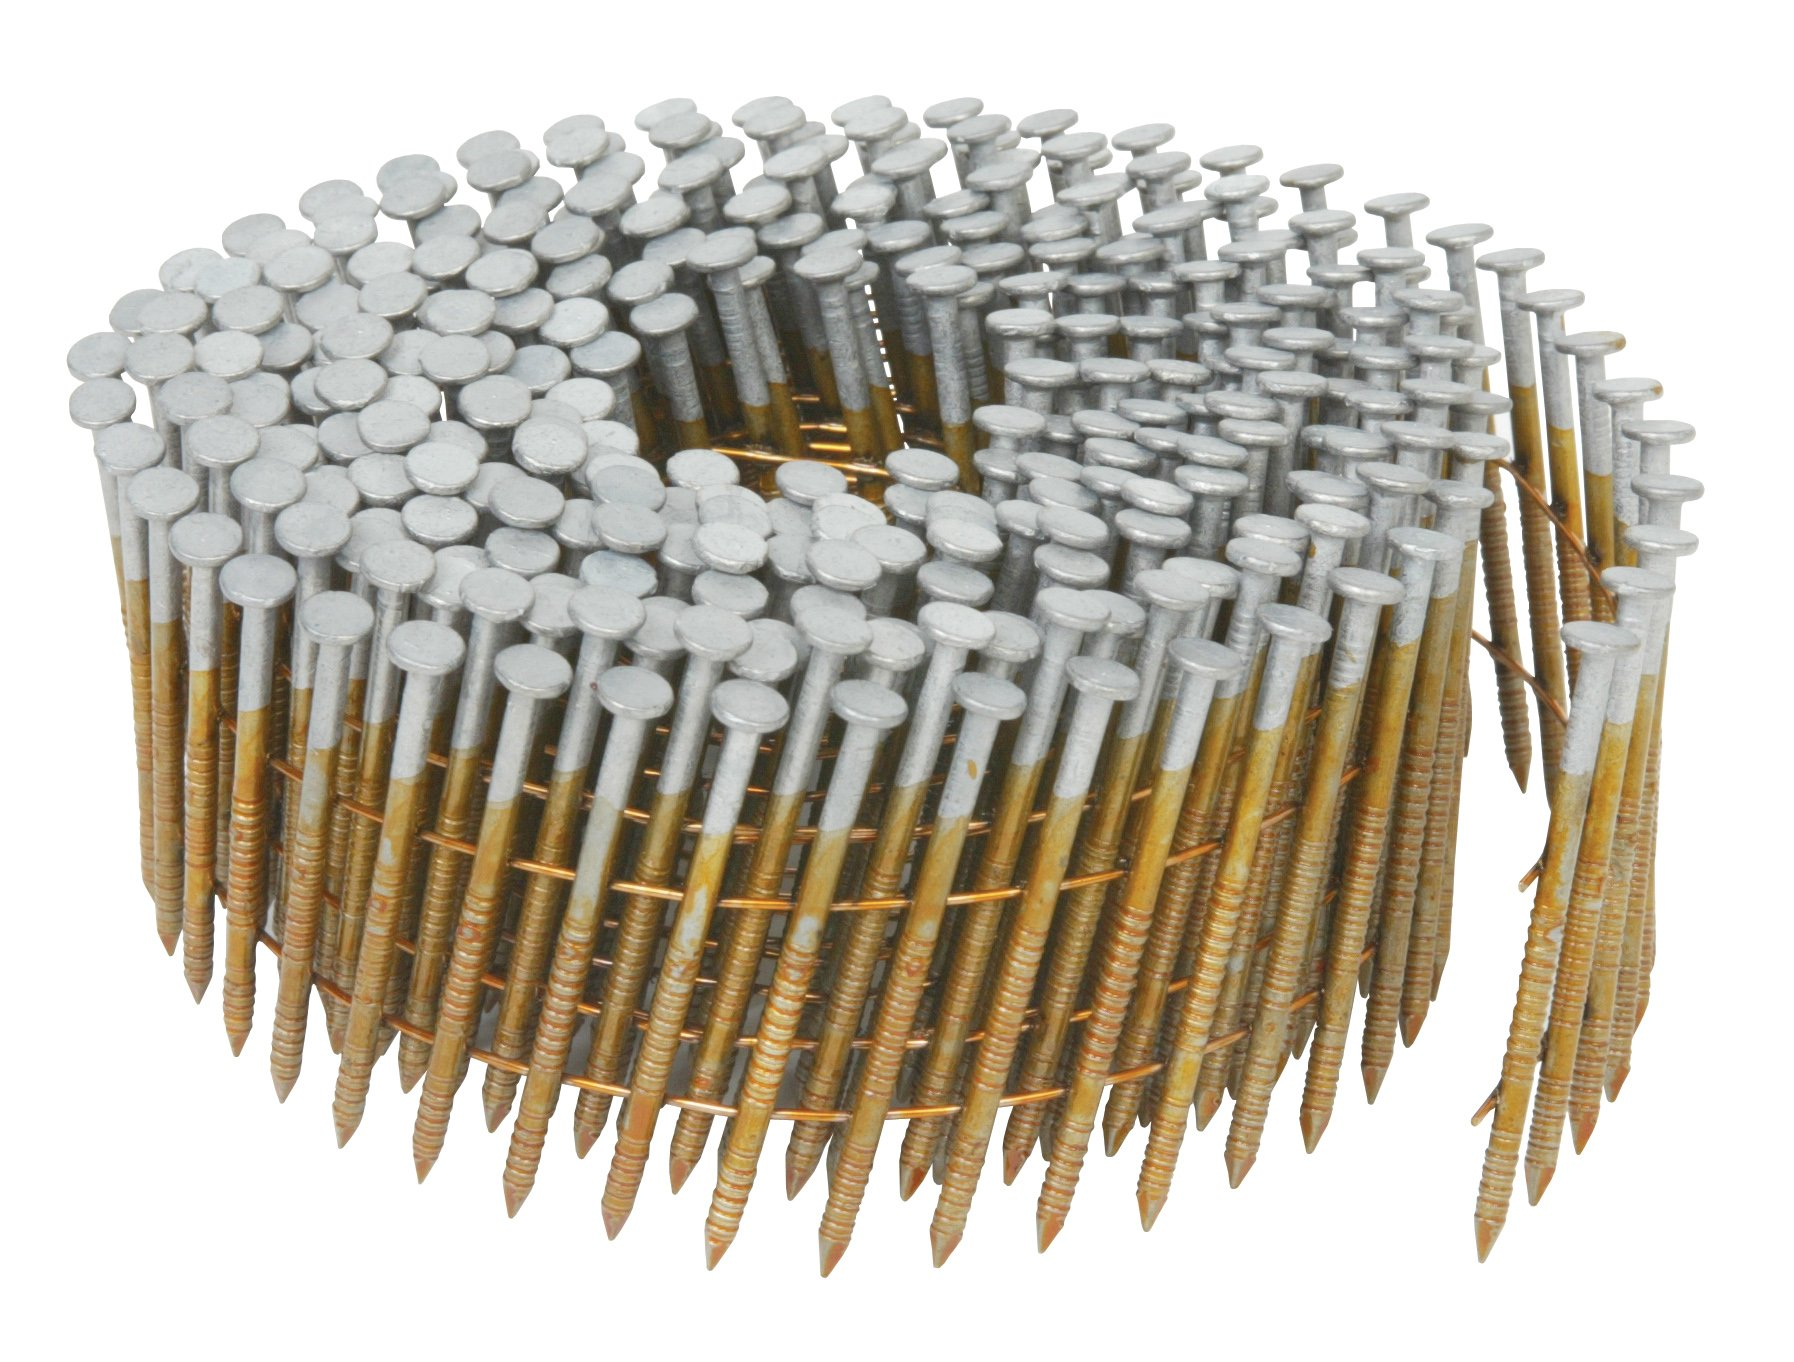 Hitachi 13369 2-1/2-Inch x 0.092-Inch Full Round-Head Ring Shank Hot-Dipped Galvanized Wire Coil Siding Nails, 3600-Pack